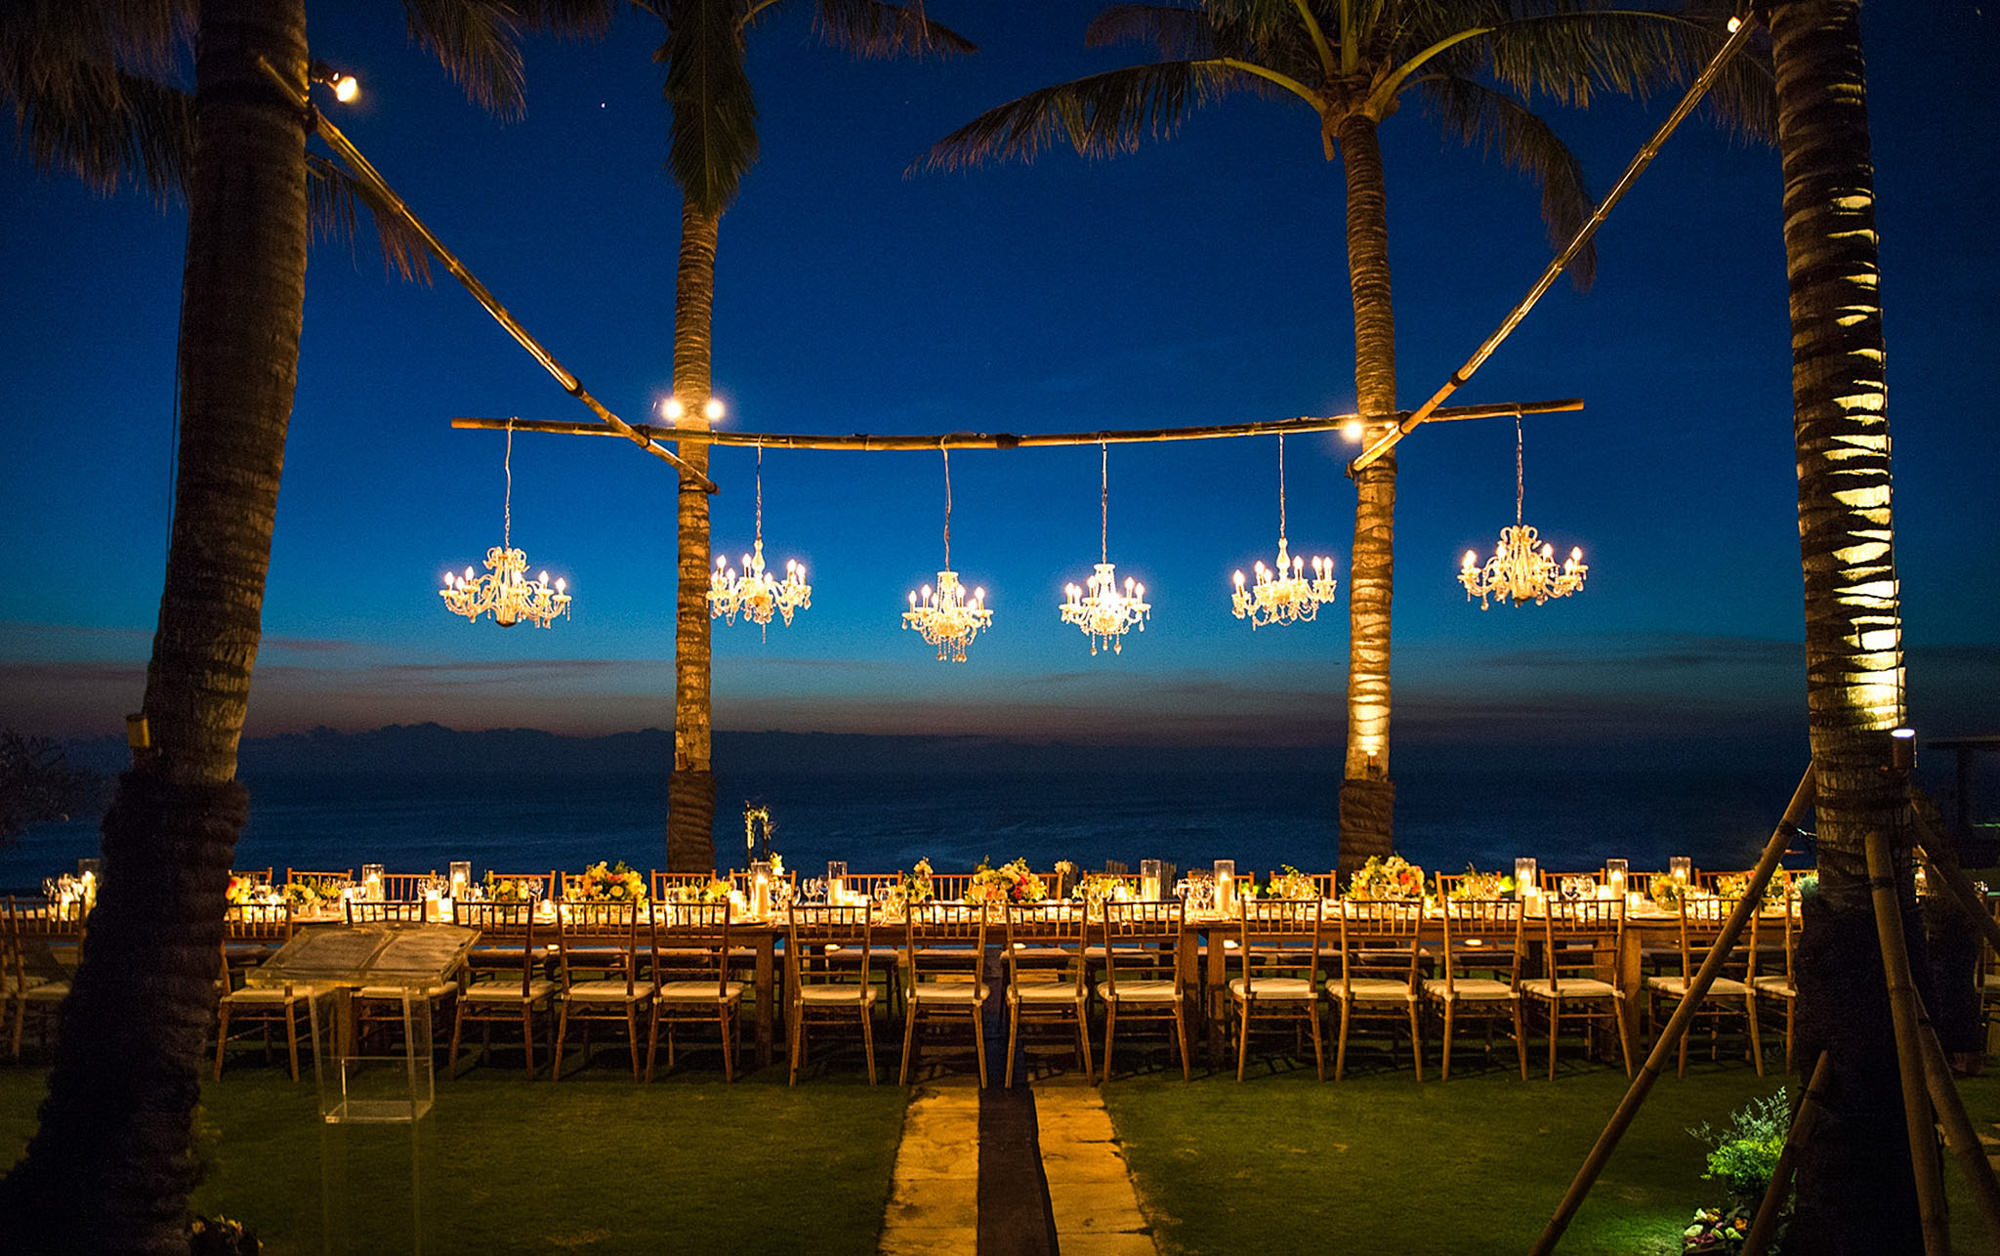 Waterfront reception decor at night with chandeliers - Studio Impressions Photography